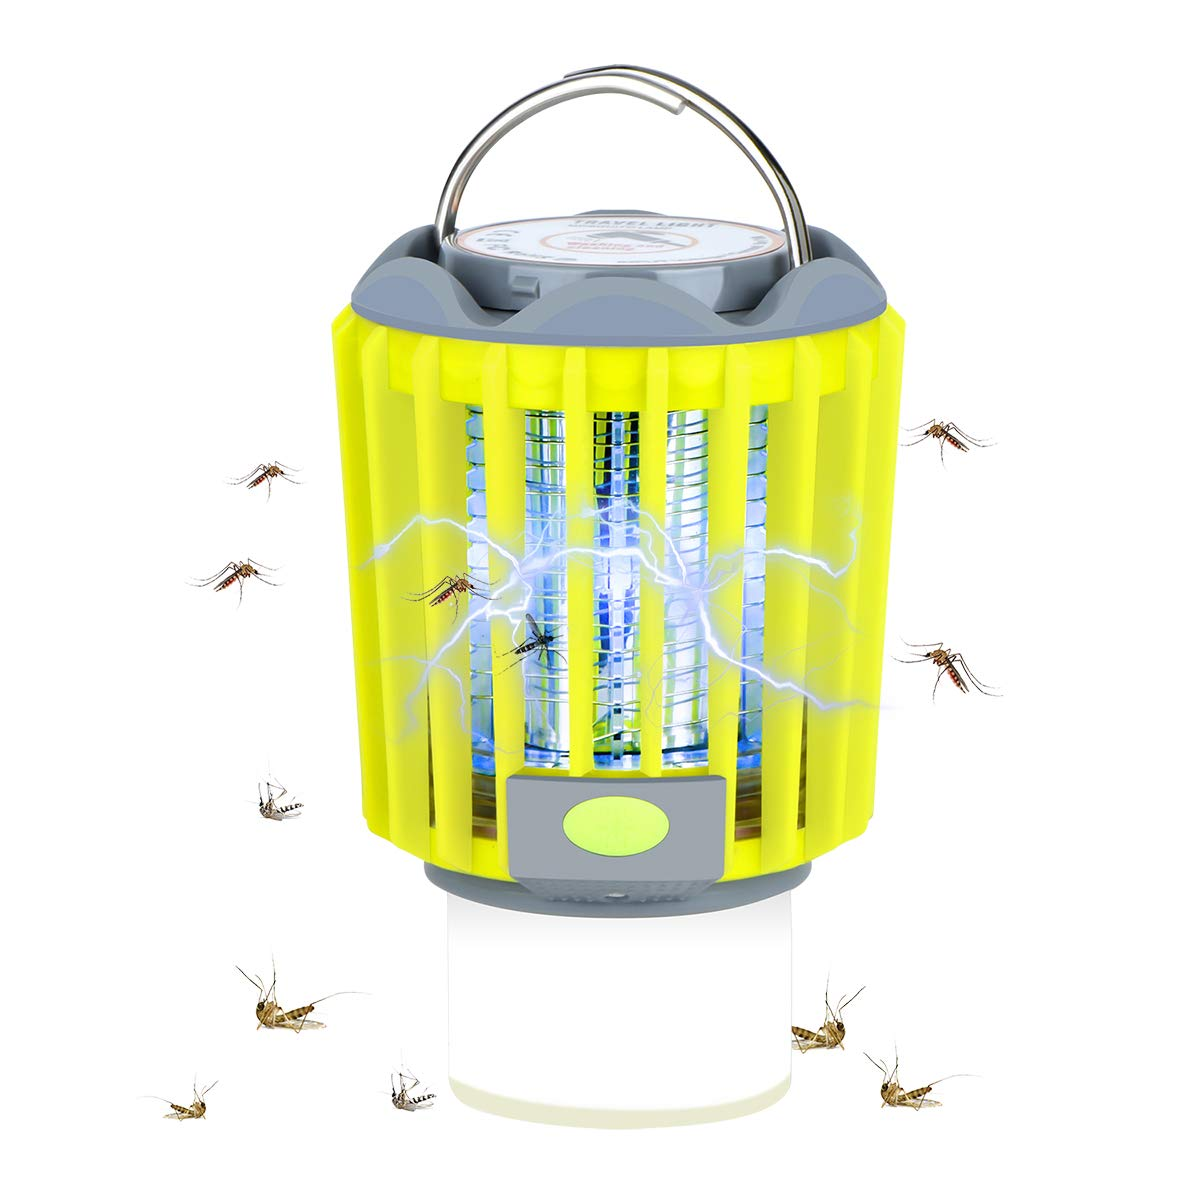 veerkey 3 in 1 Mosquito Killer Tent Light LED Lantern Flashlight/Camping Lamp, Portable and IPX6 Anti Bug Insect Repellent - Green